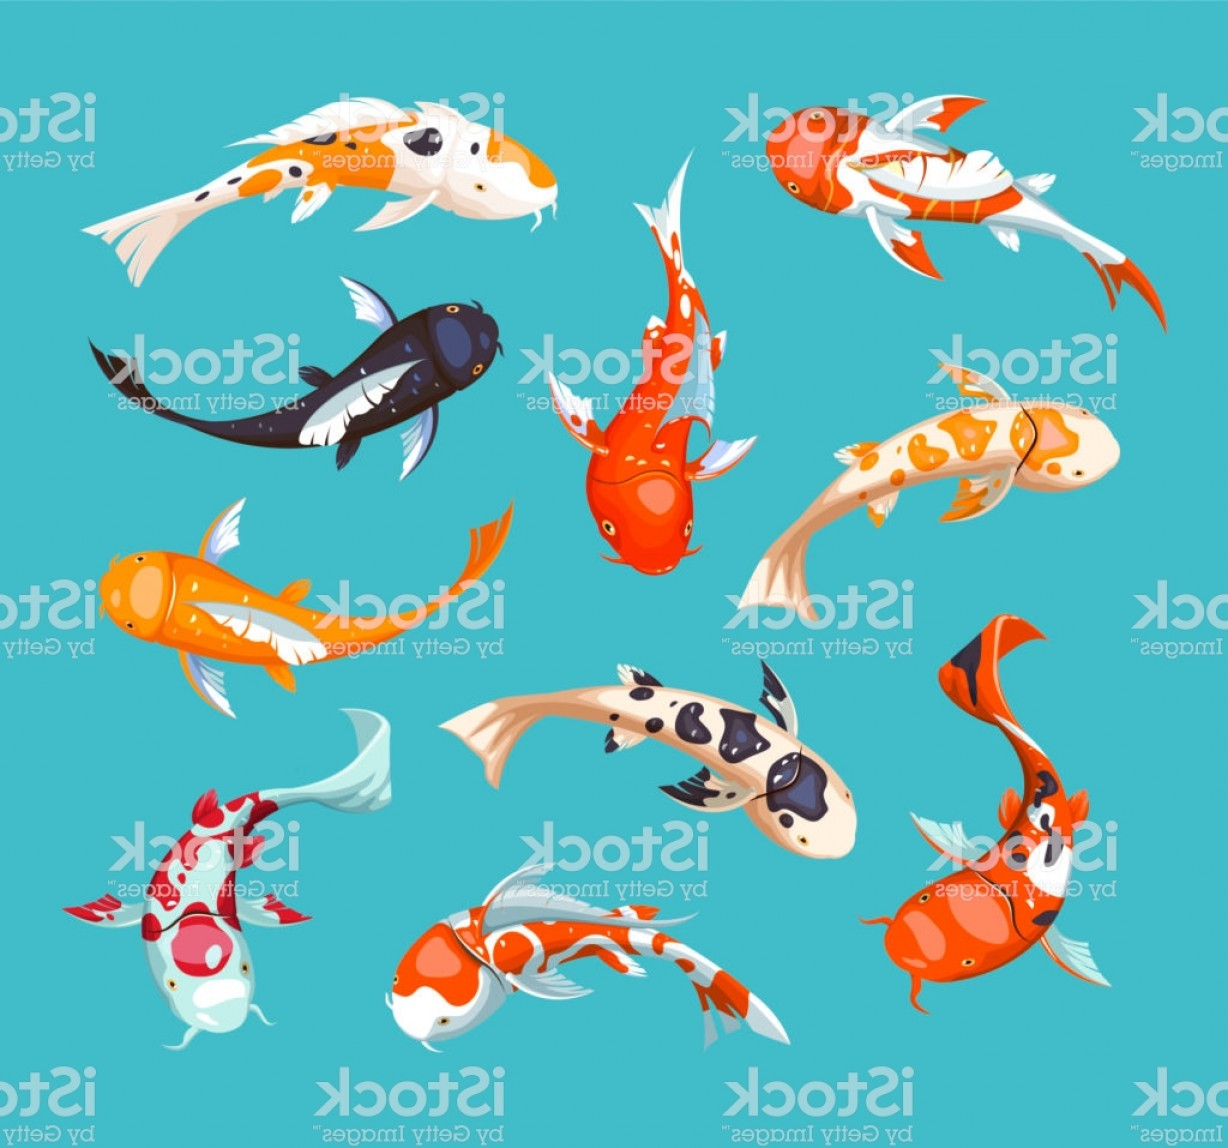 Koi Vector: Koi Carps Koi Japanese Fish Vector Illustration Chinese Goldfish Koi Symbol Of Gm